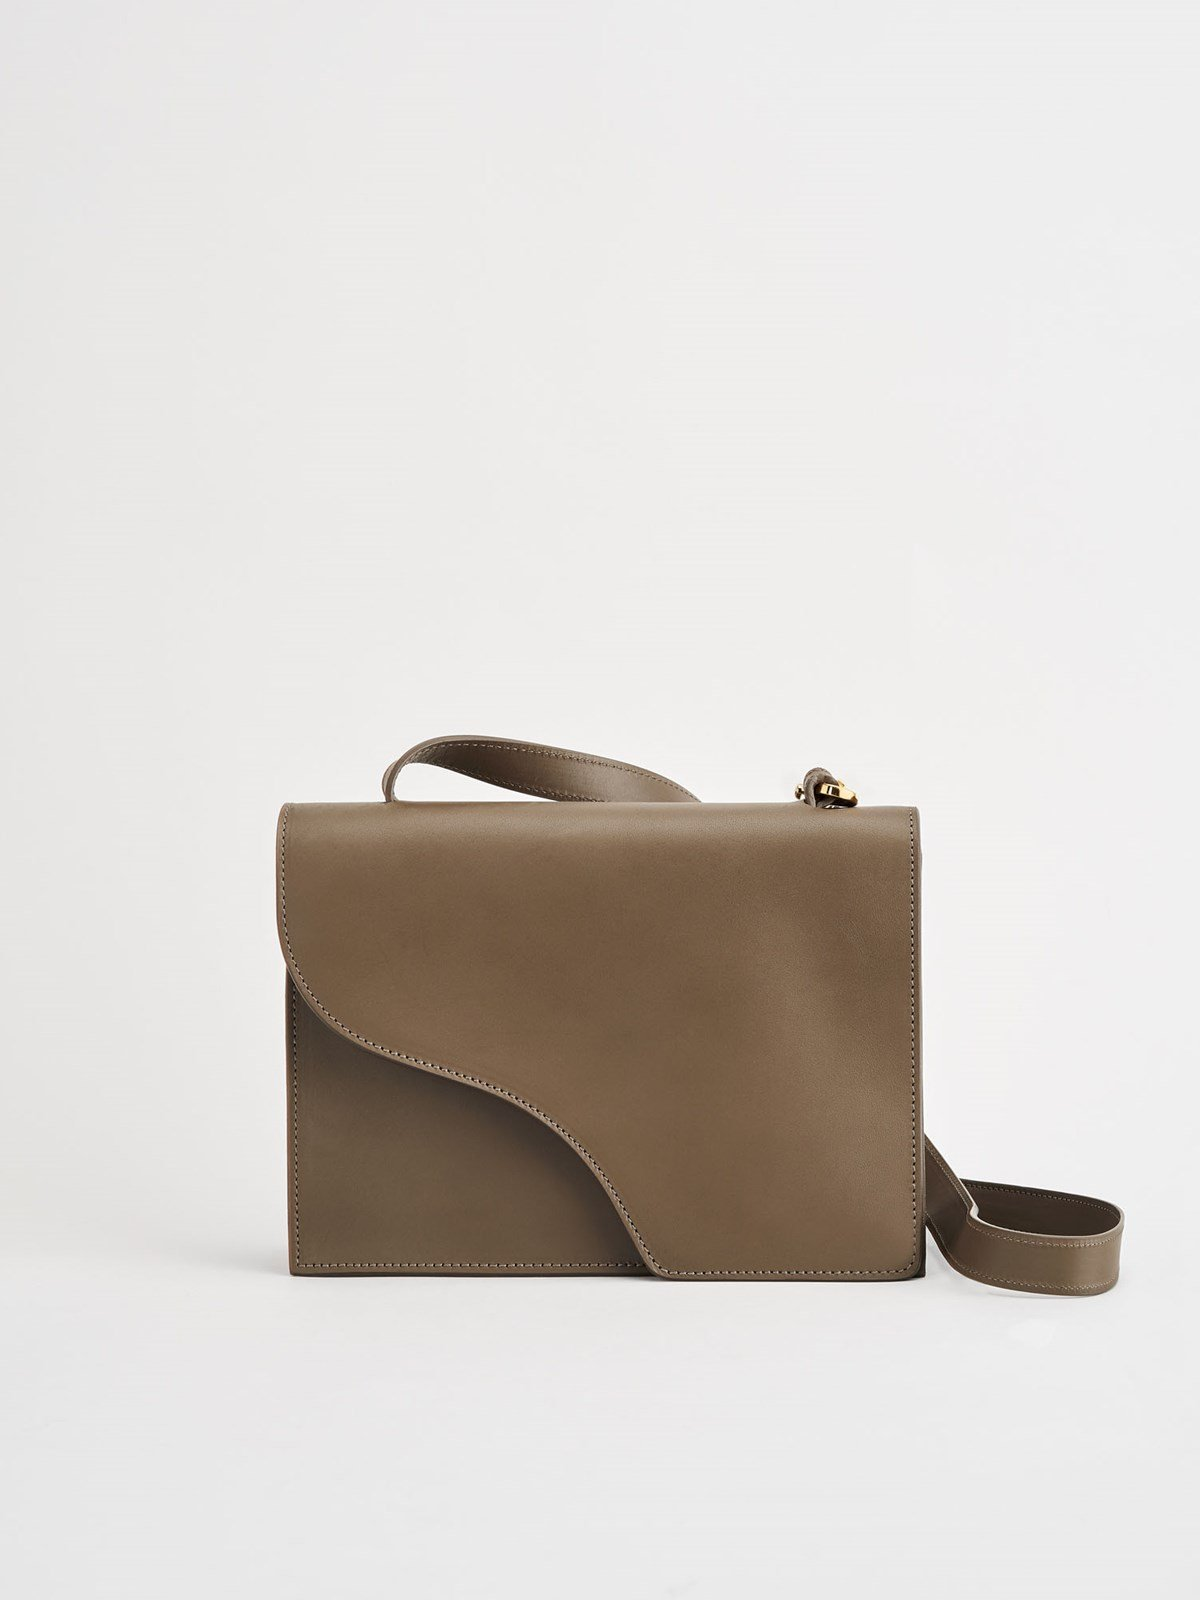 Siena Khaki Brown Crossbody bag